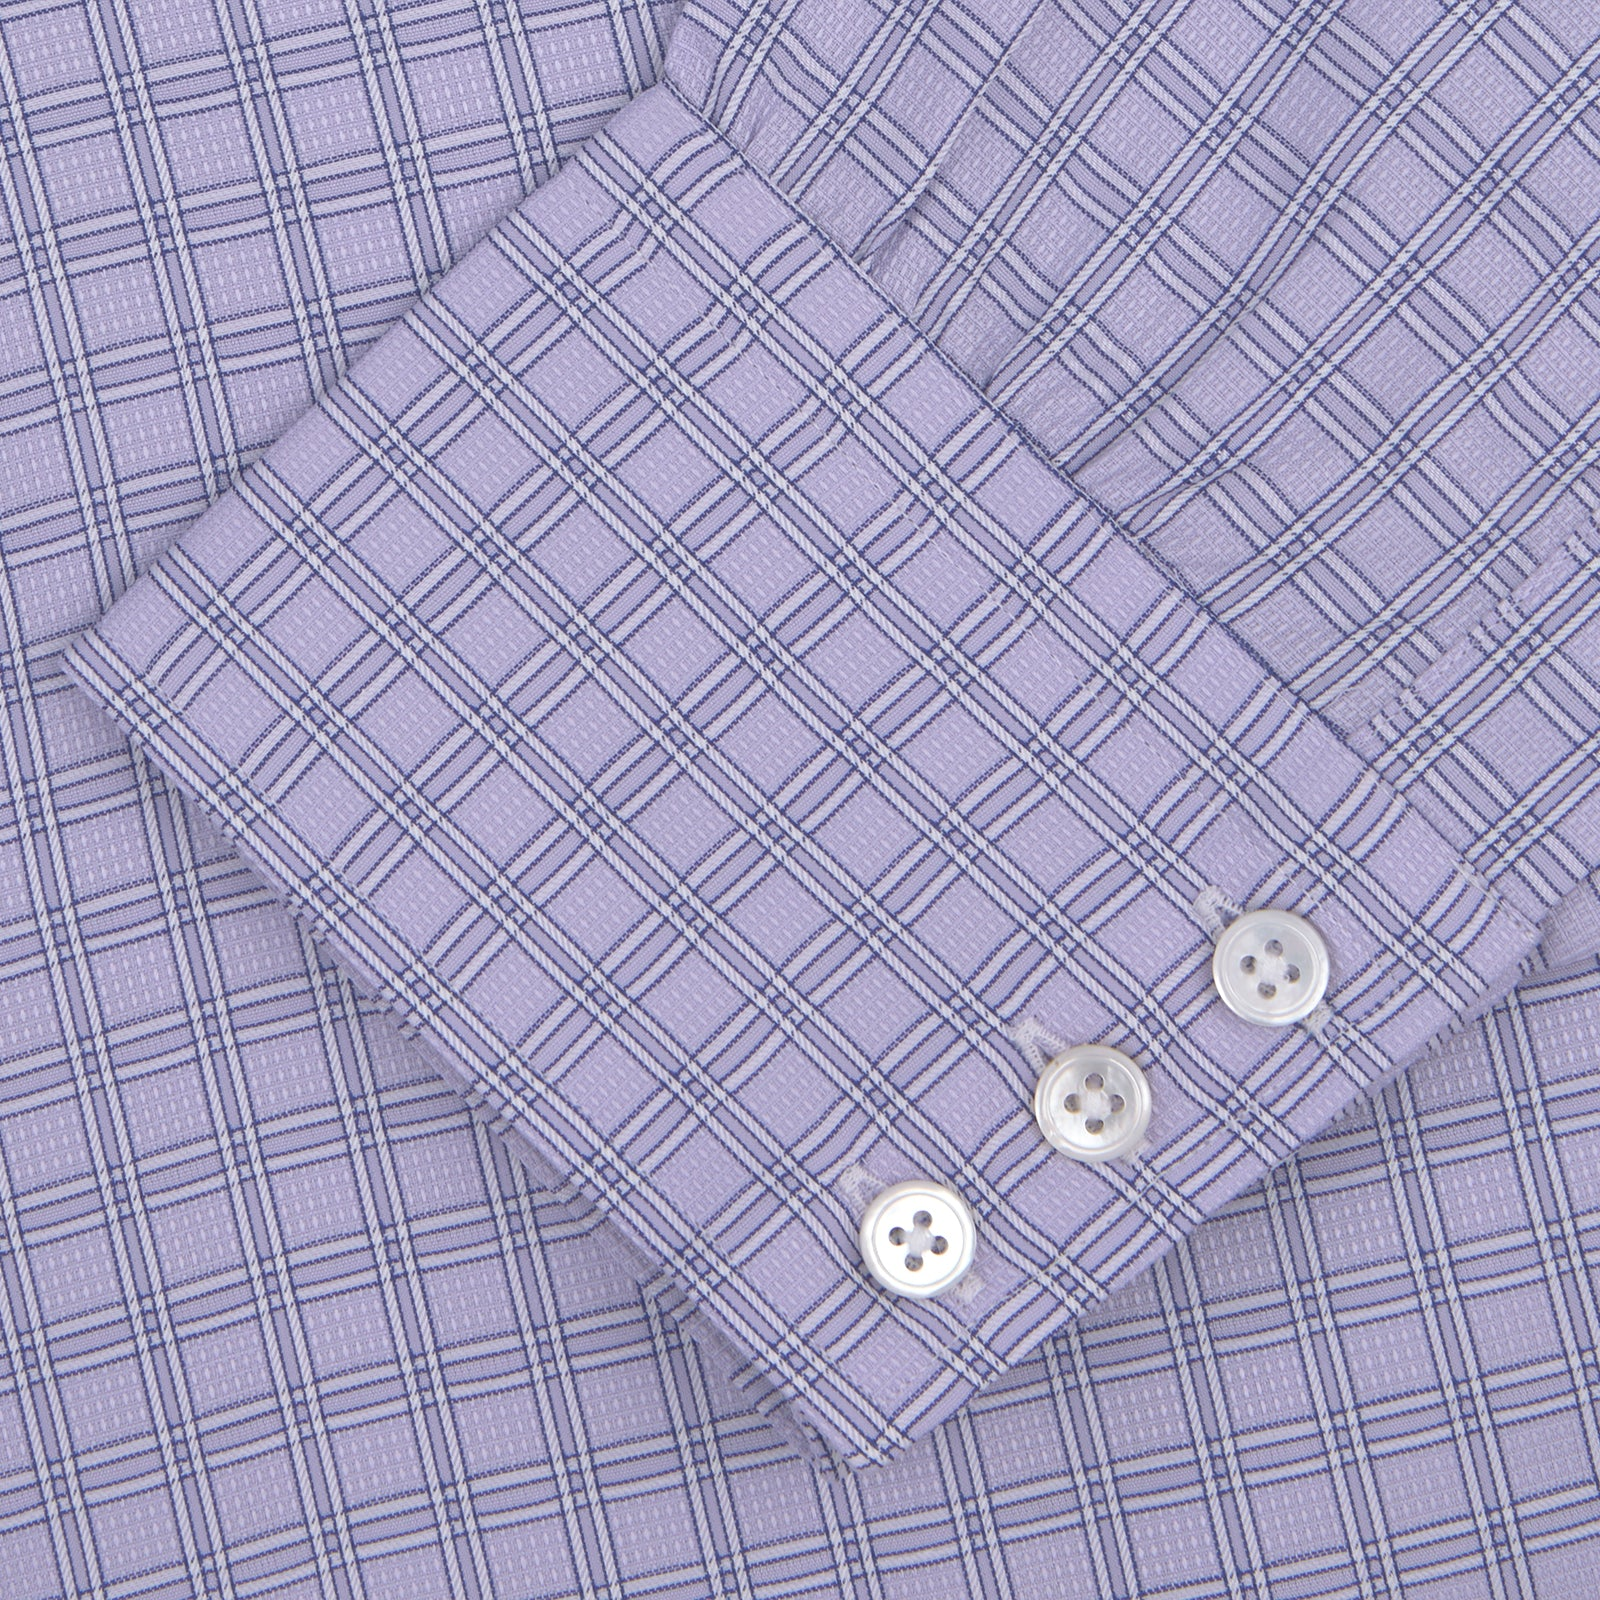 Lilac and White Check Shirt with T&A Collar and Button Cuffs